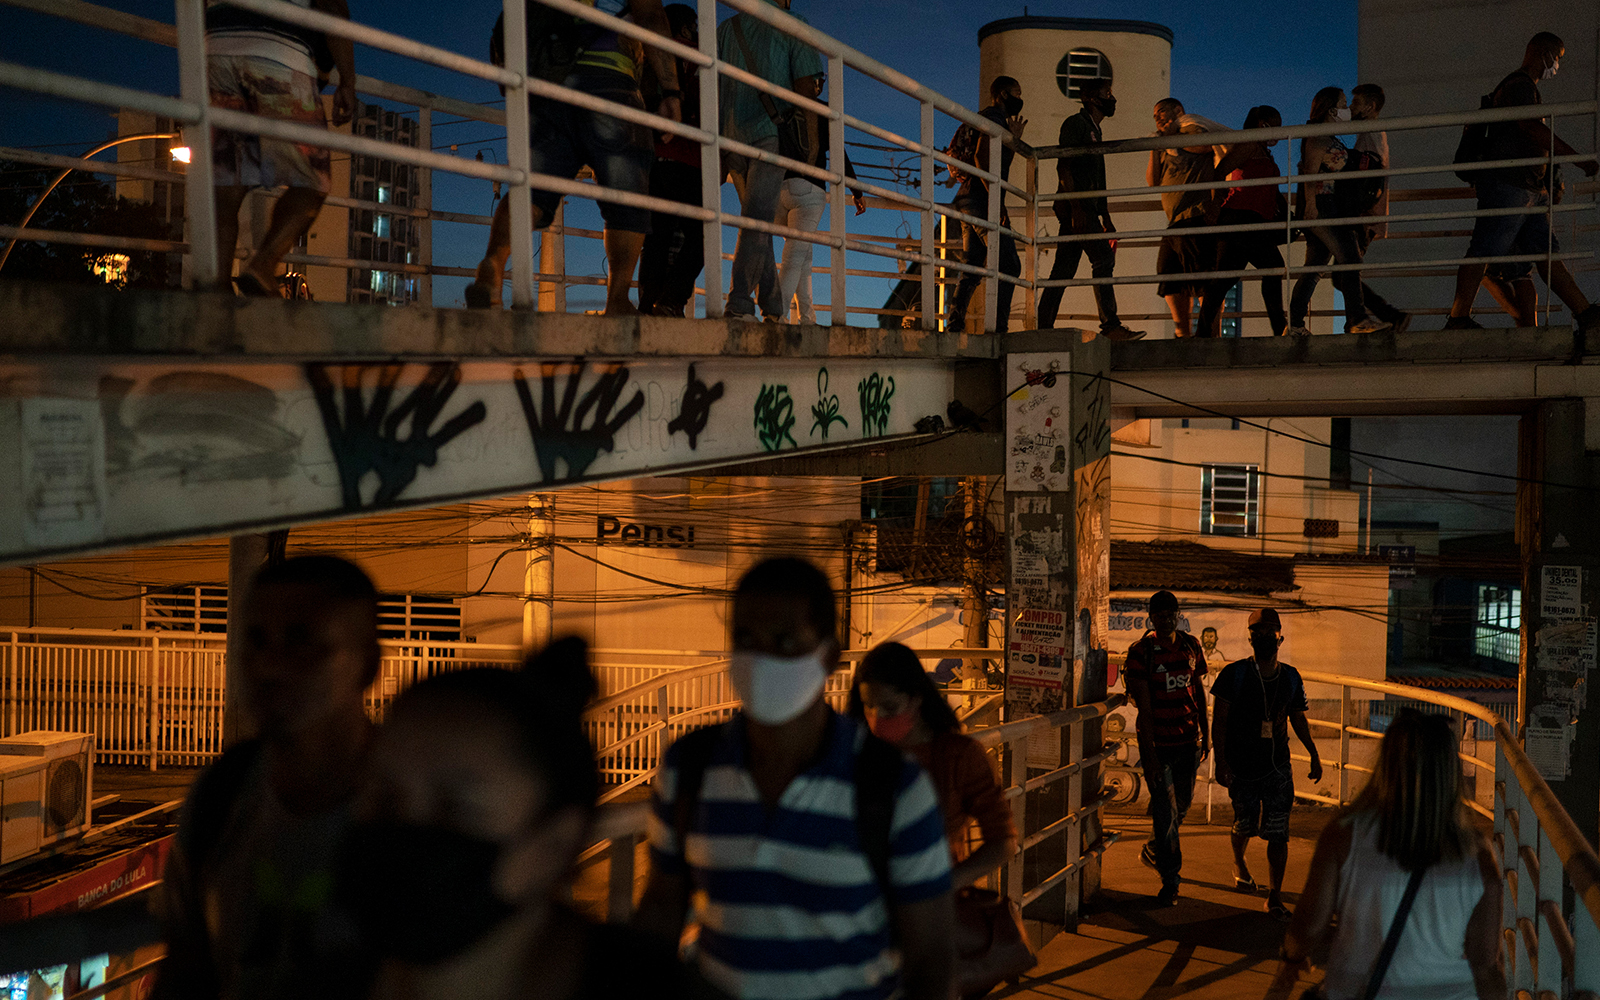 People, some wearing masks to curb the spread of the coronavirus, on a footbridge to a bus and train station in Rio de Janeiro, Brazil, June 25, 2020. (AP Photo/Leo Correa)